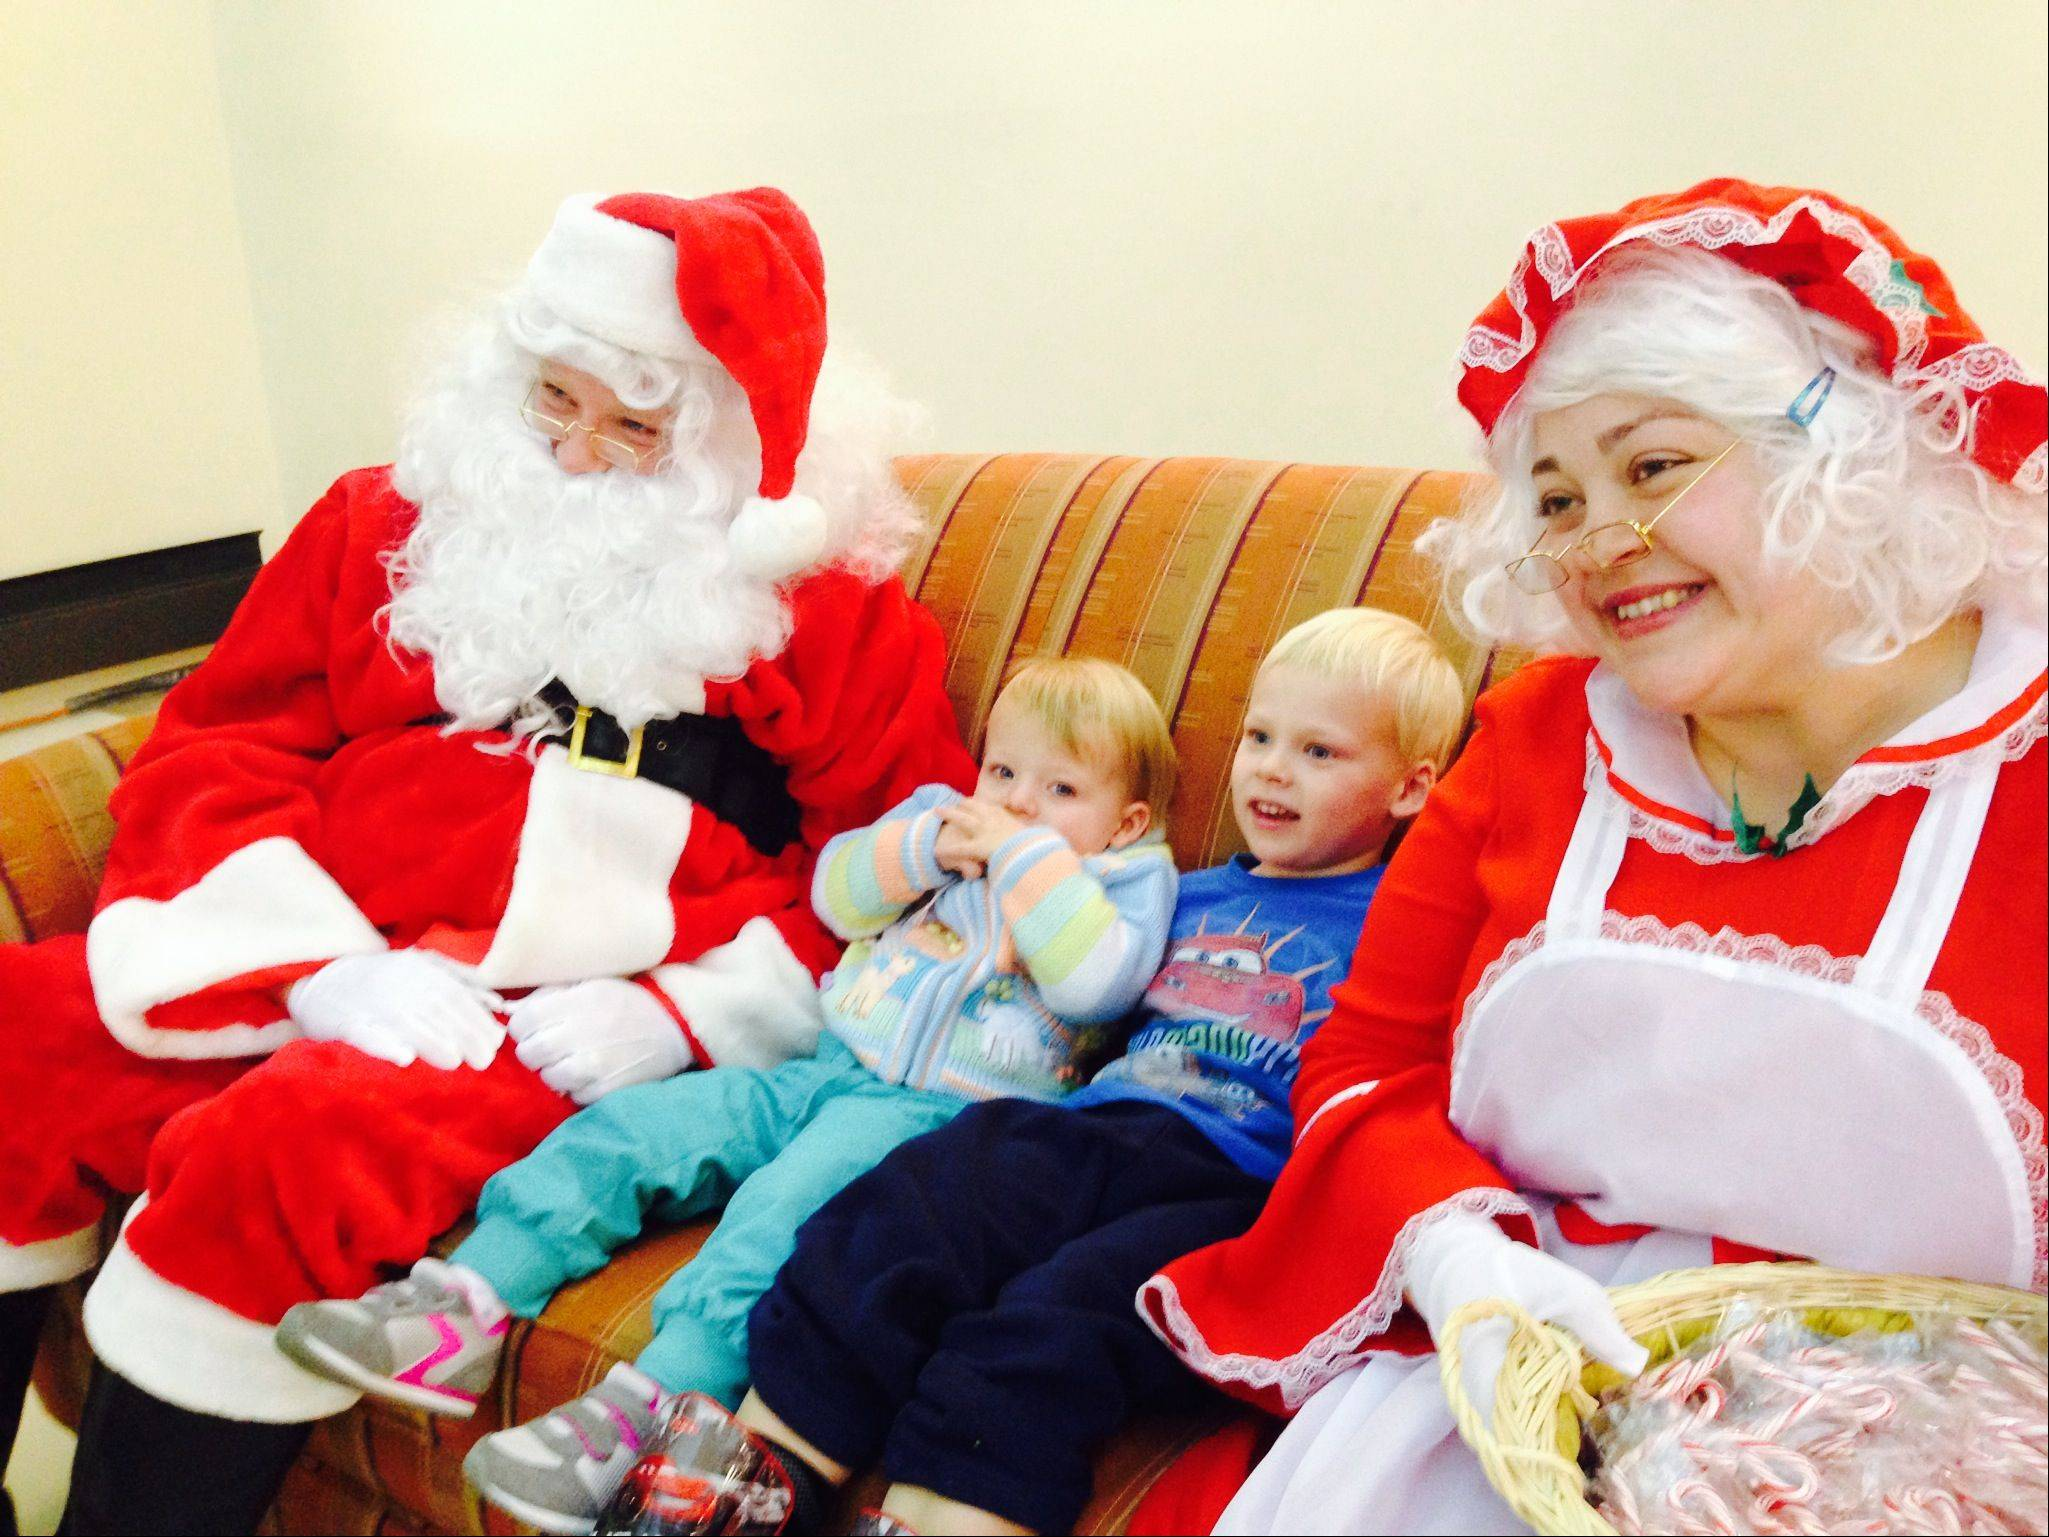 Henry Parks, 3, and his little sister Hailey, 1�, of Cary, met Santa and Mrs. Claus at the Hoffman Estates village hall on Saturday.